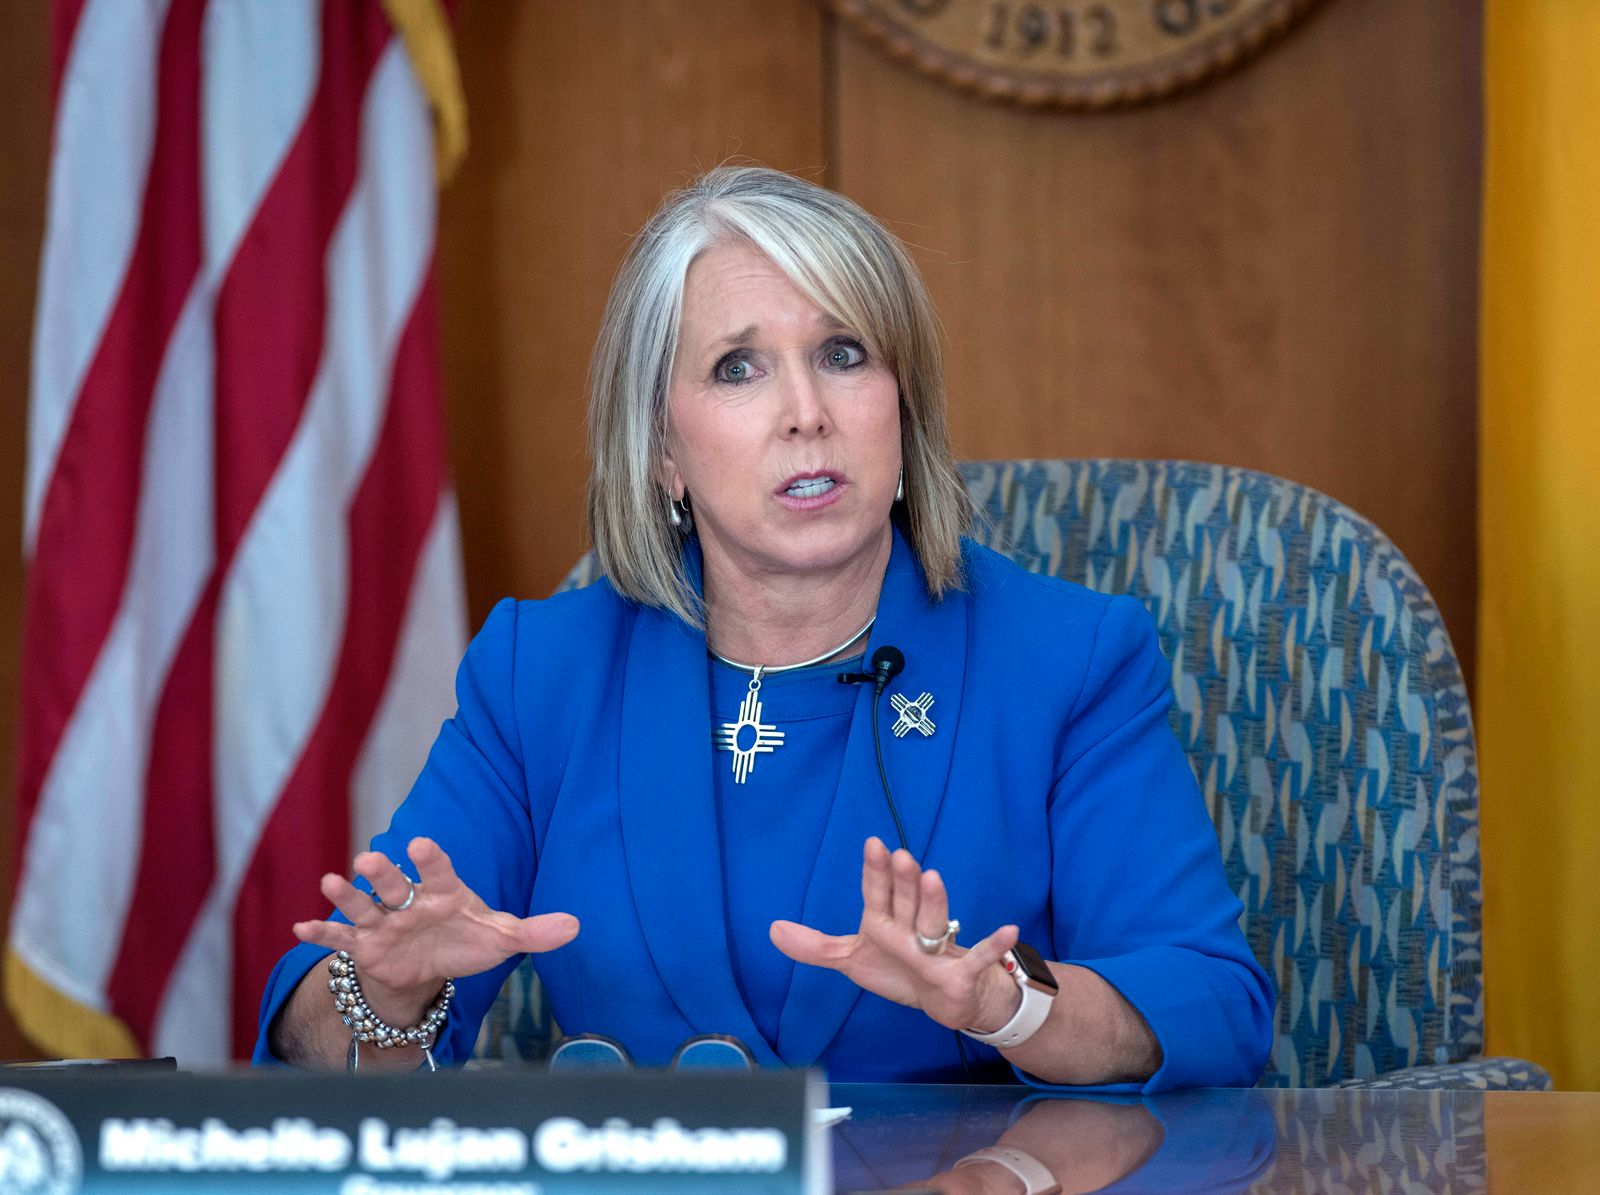 July 9, 2020, USA: Governor Michelle Lujan Grisham announces some return to closures during her weekly update on the COV